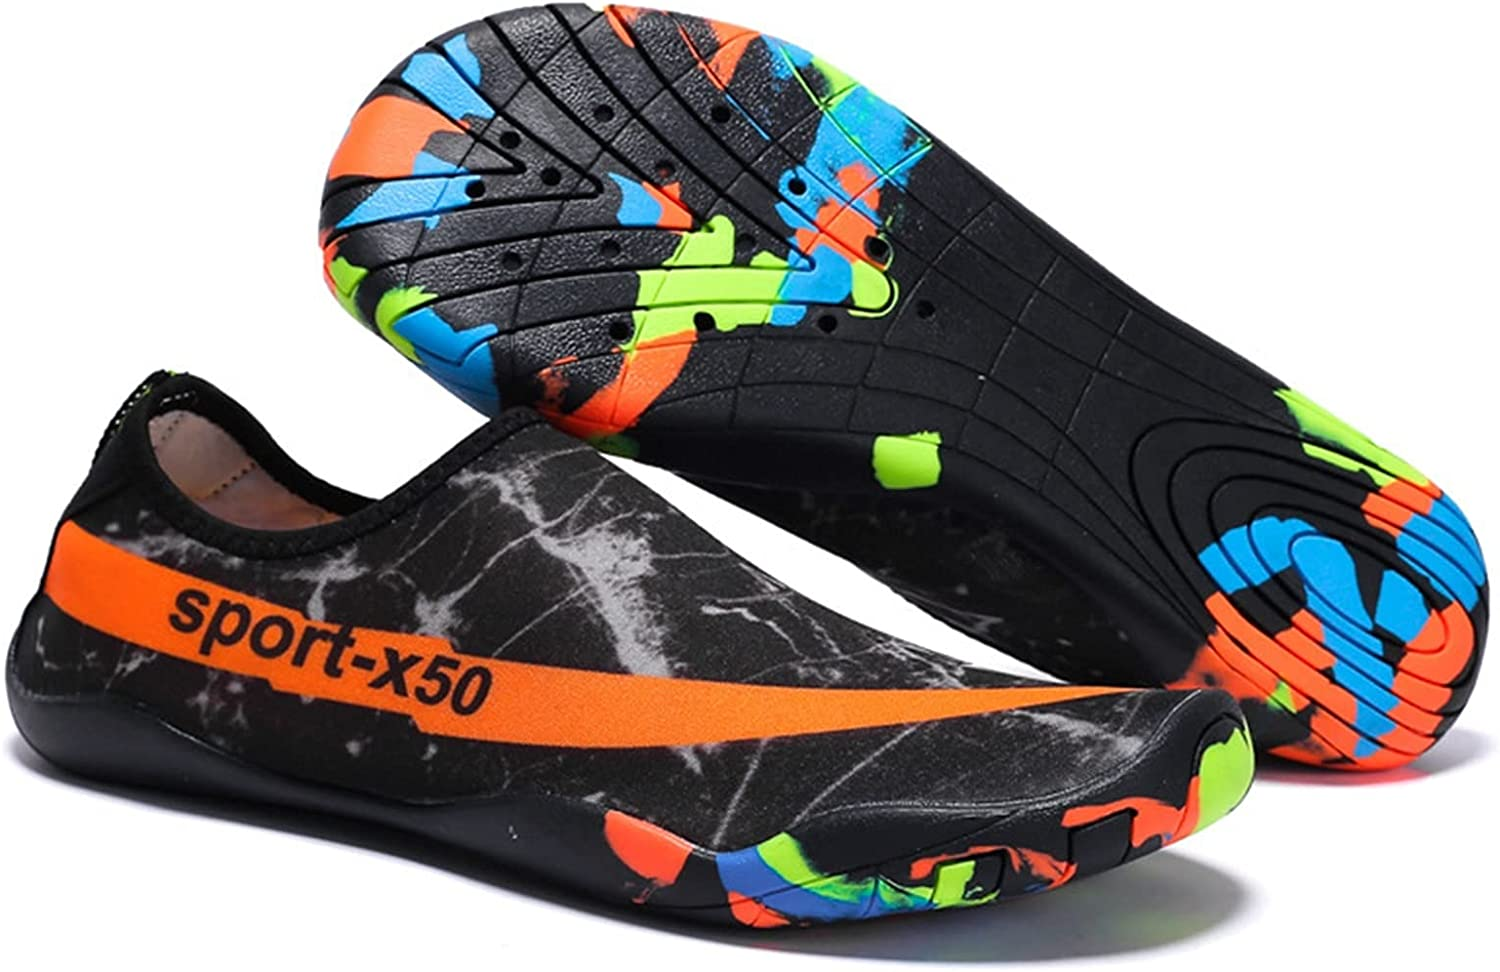 Jiahezi Mens Womens Water Sports Shoes Quick-Dry Lightweight Barefoot Wide Feet Toe Solid Drainage Sole for Swim Diving Surf Aqua Pool Beach (Color : 1918 Black Orange, Size : 46 Yards 28.7cm)